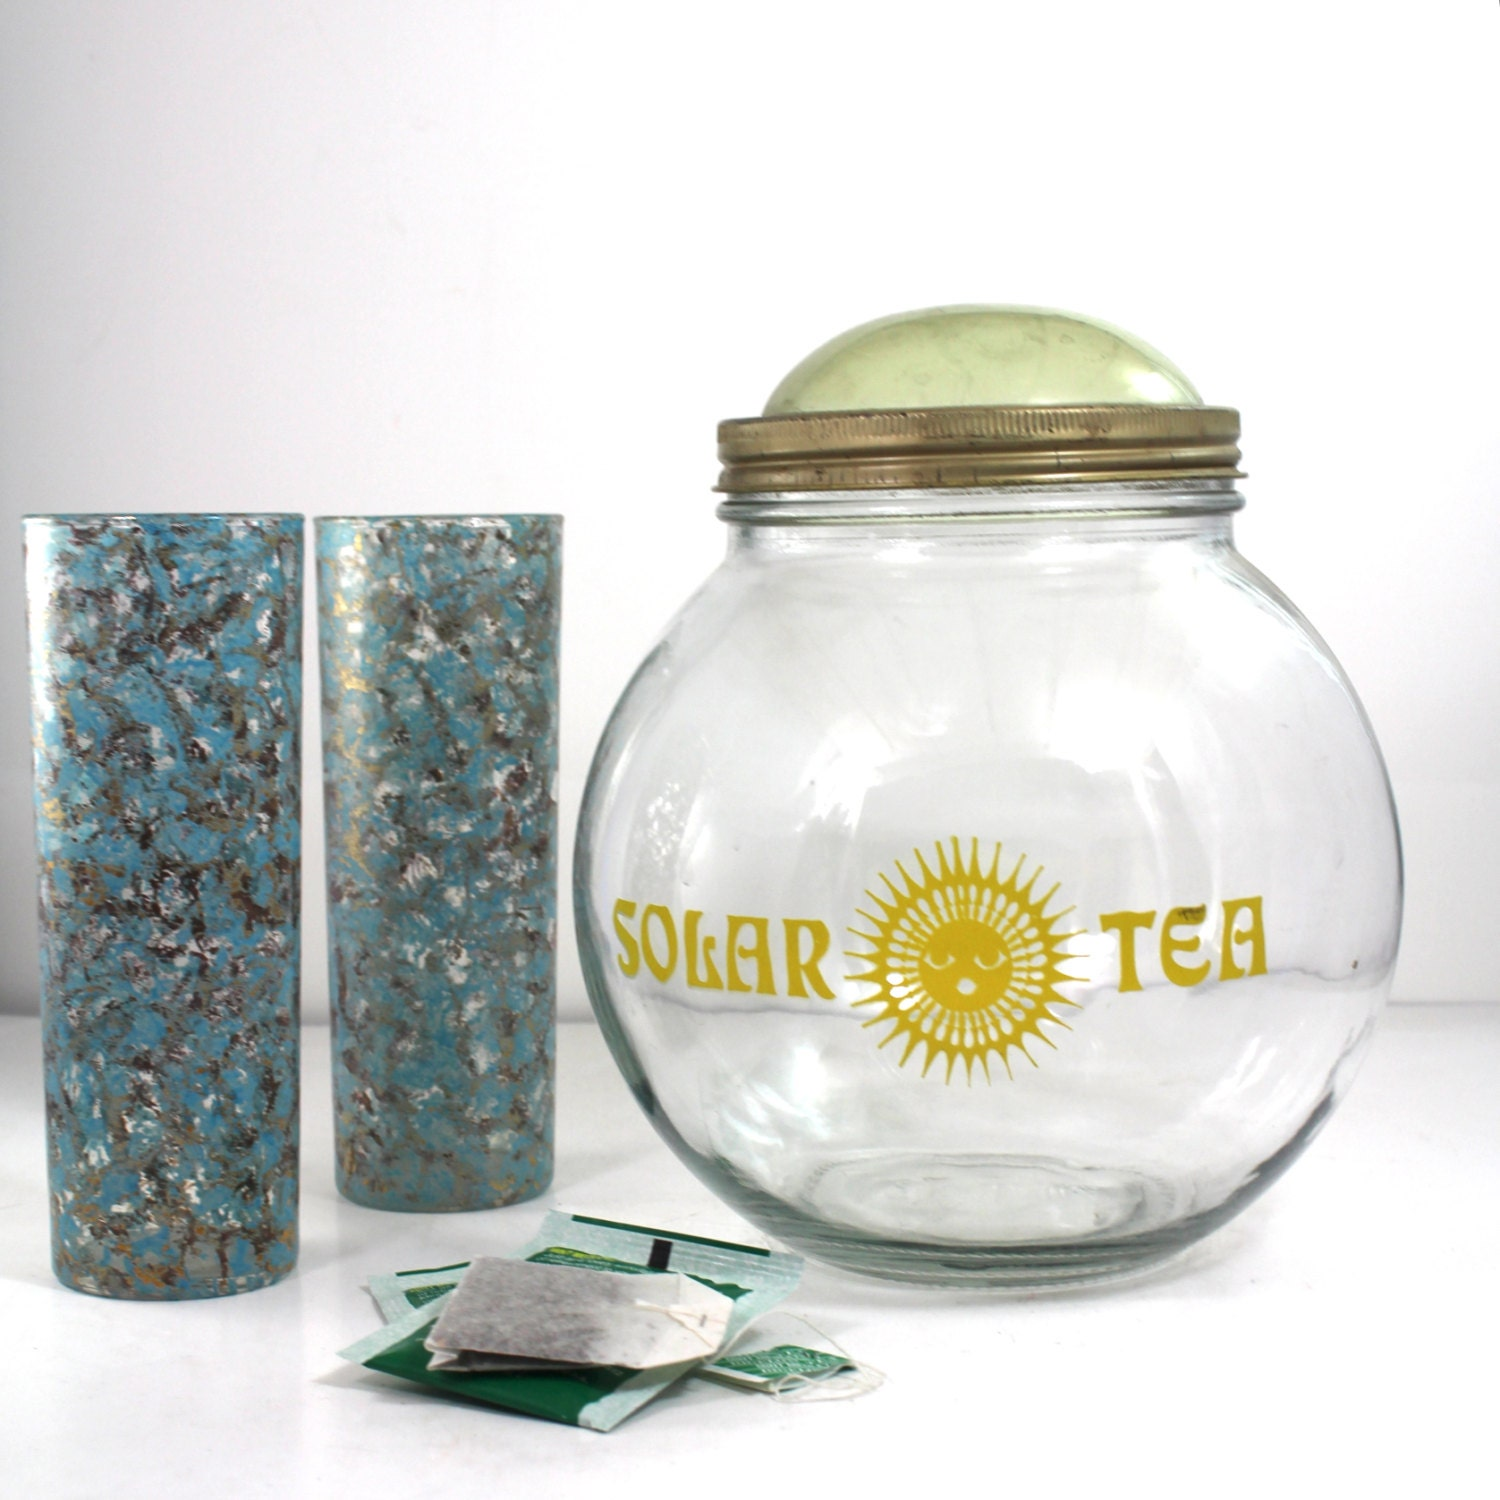 Solar Tea Sun powered brewing Jar by SugarLMtnAntqs on Etsy